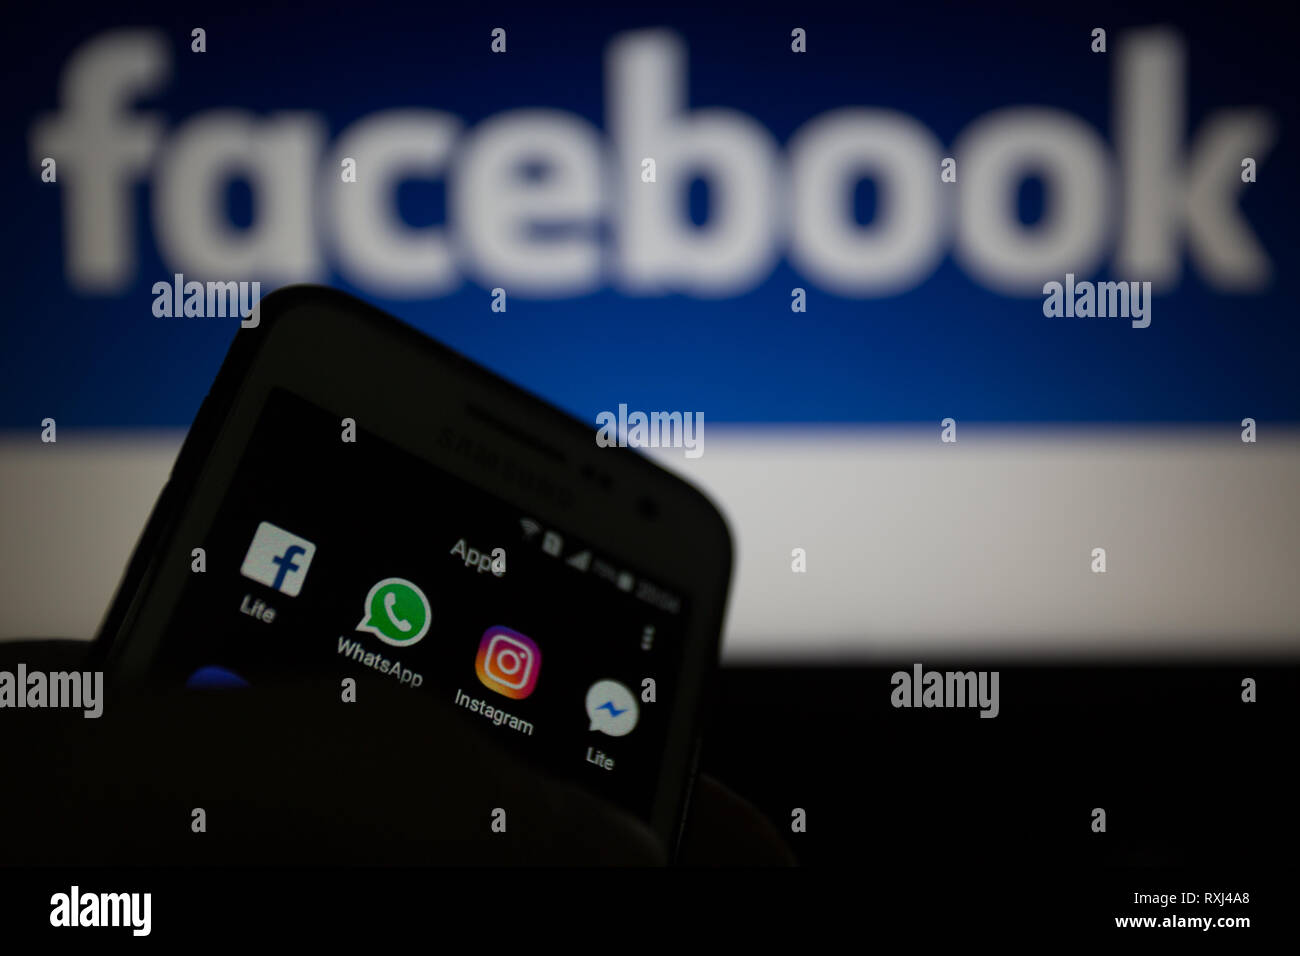 Facebook Lite, WhatsApp, Instagram and Messenger Lite icons, logos are shown on smartphone display. Facebook plans to integrate its messaging services - Stock Image